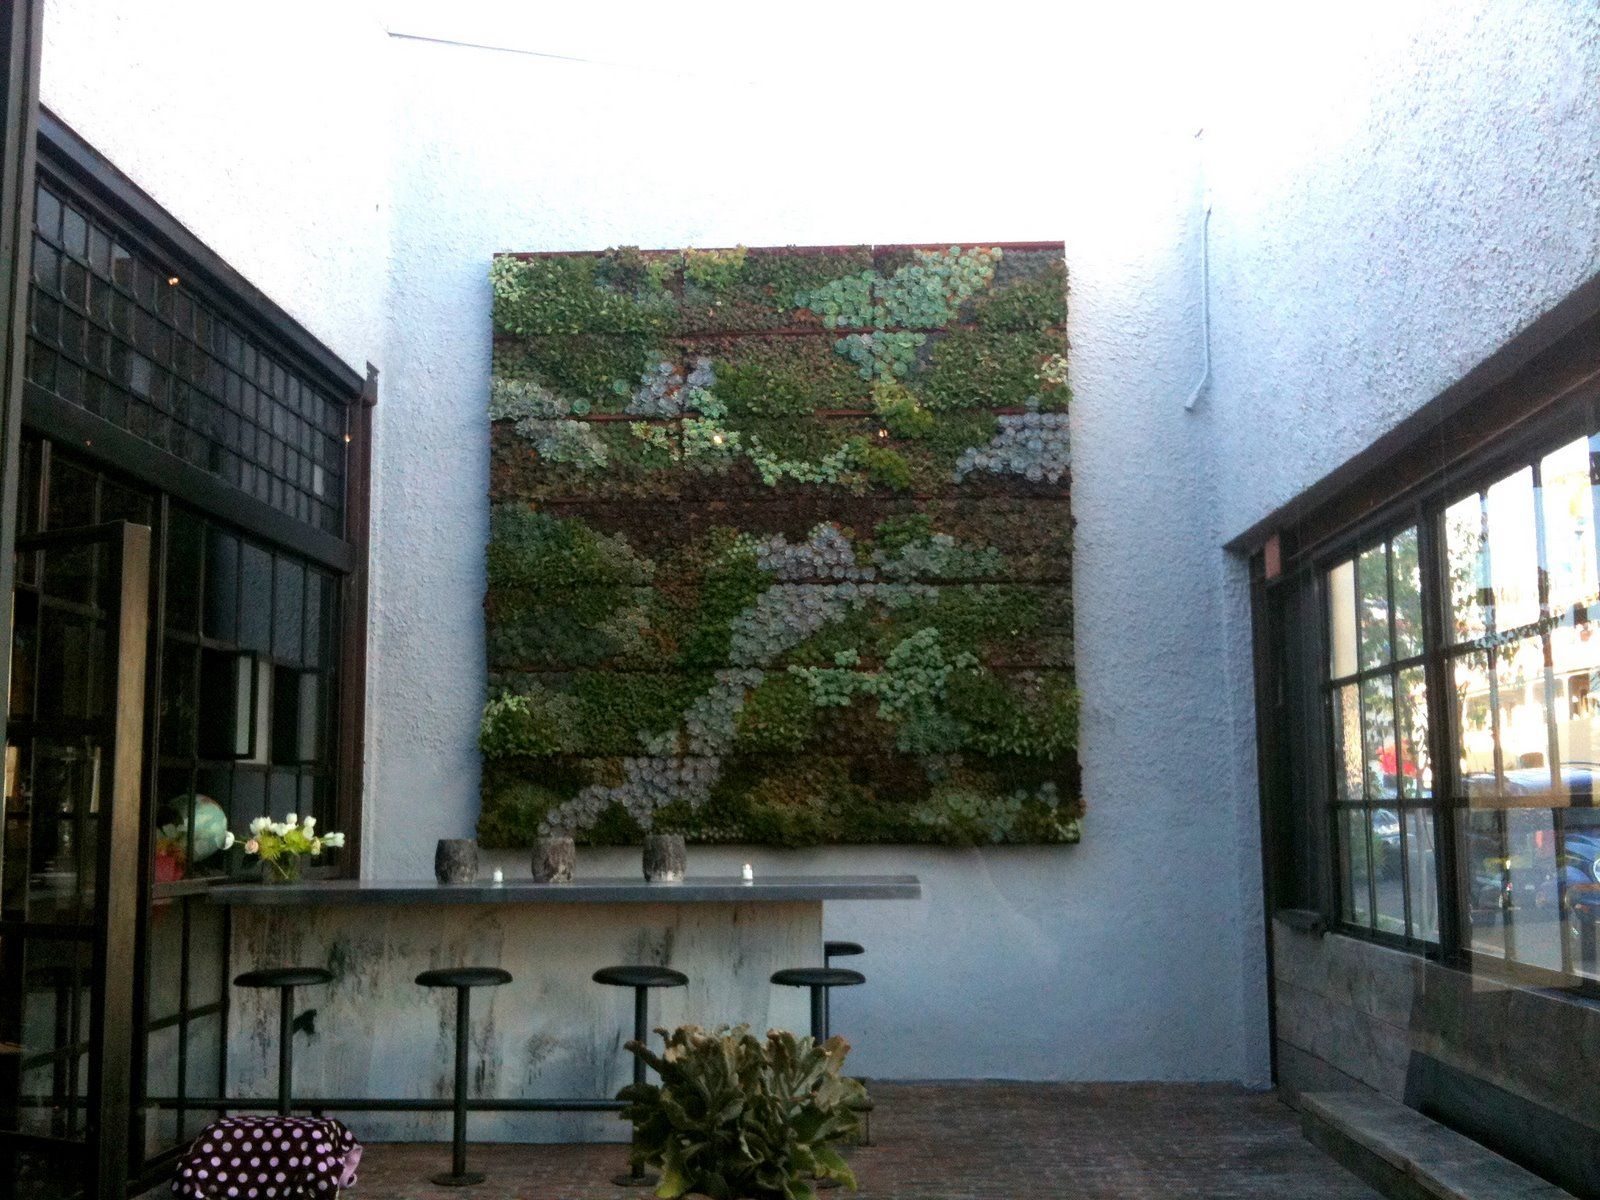 Vertical succulent wall panel from Bankers Hill Bar & Restaurant in